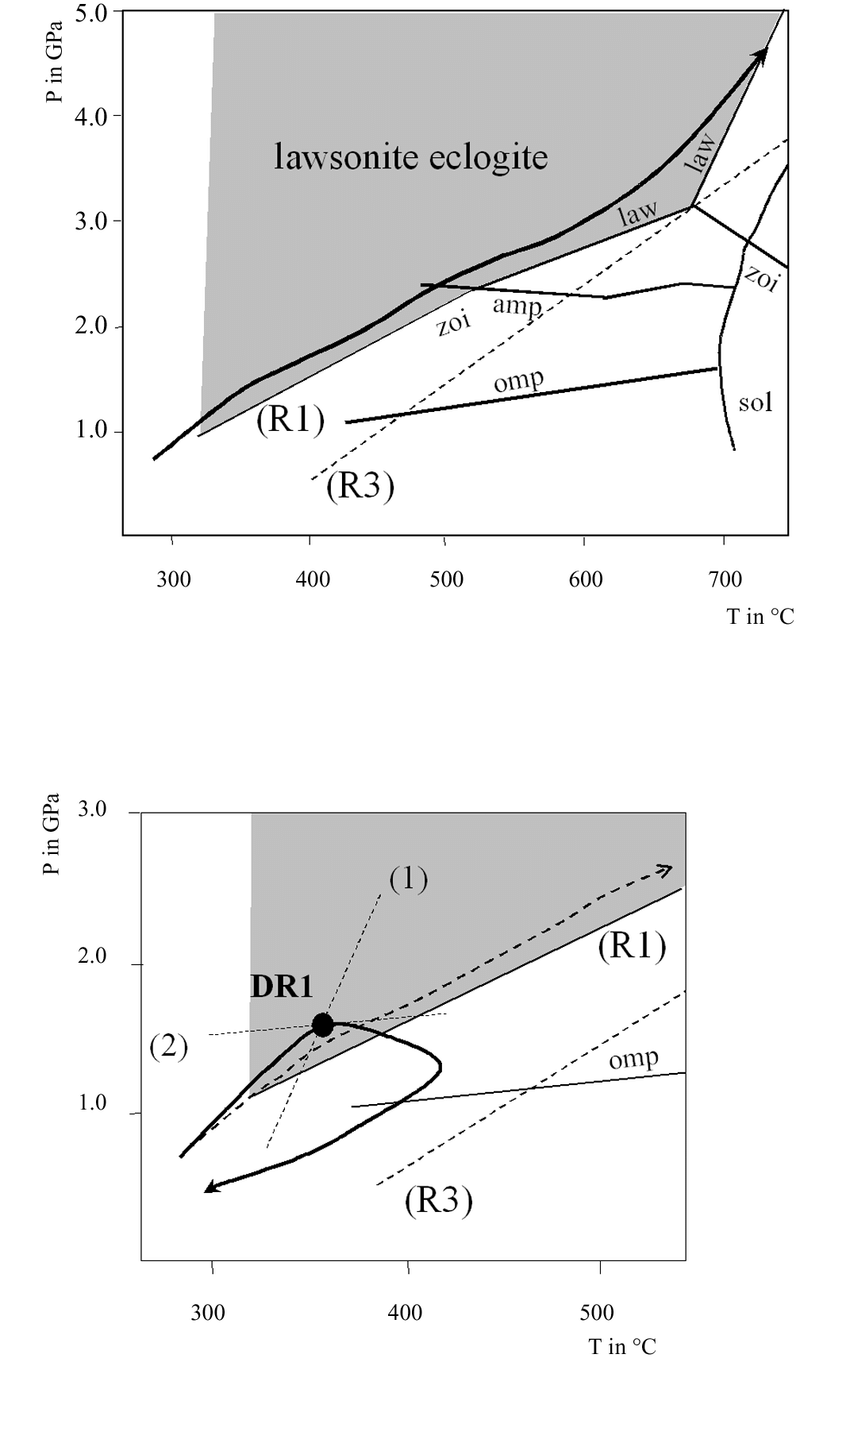 hight resolution of  a pt diagram illustrating the stability field of lawsonite eclogite shaded and